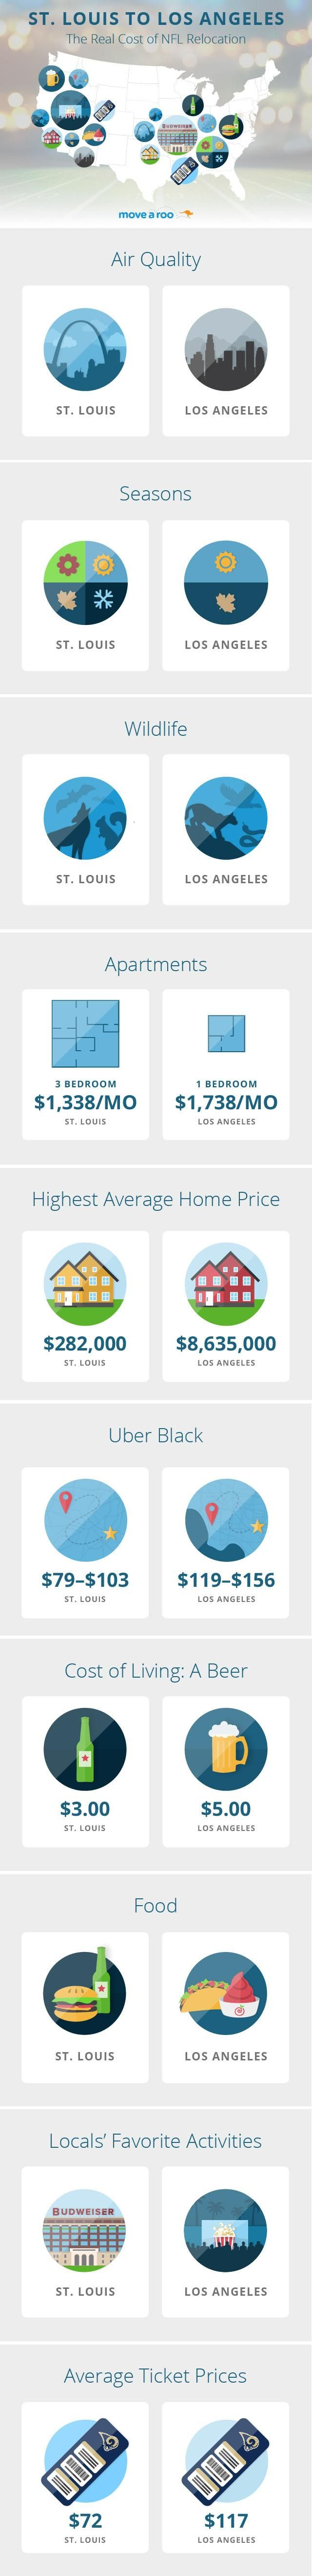 The Rams are moving to LA! We dug into the actual costs of relocation from St. Louis to LA and found some really surprising stats!